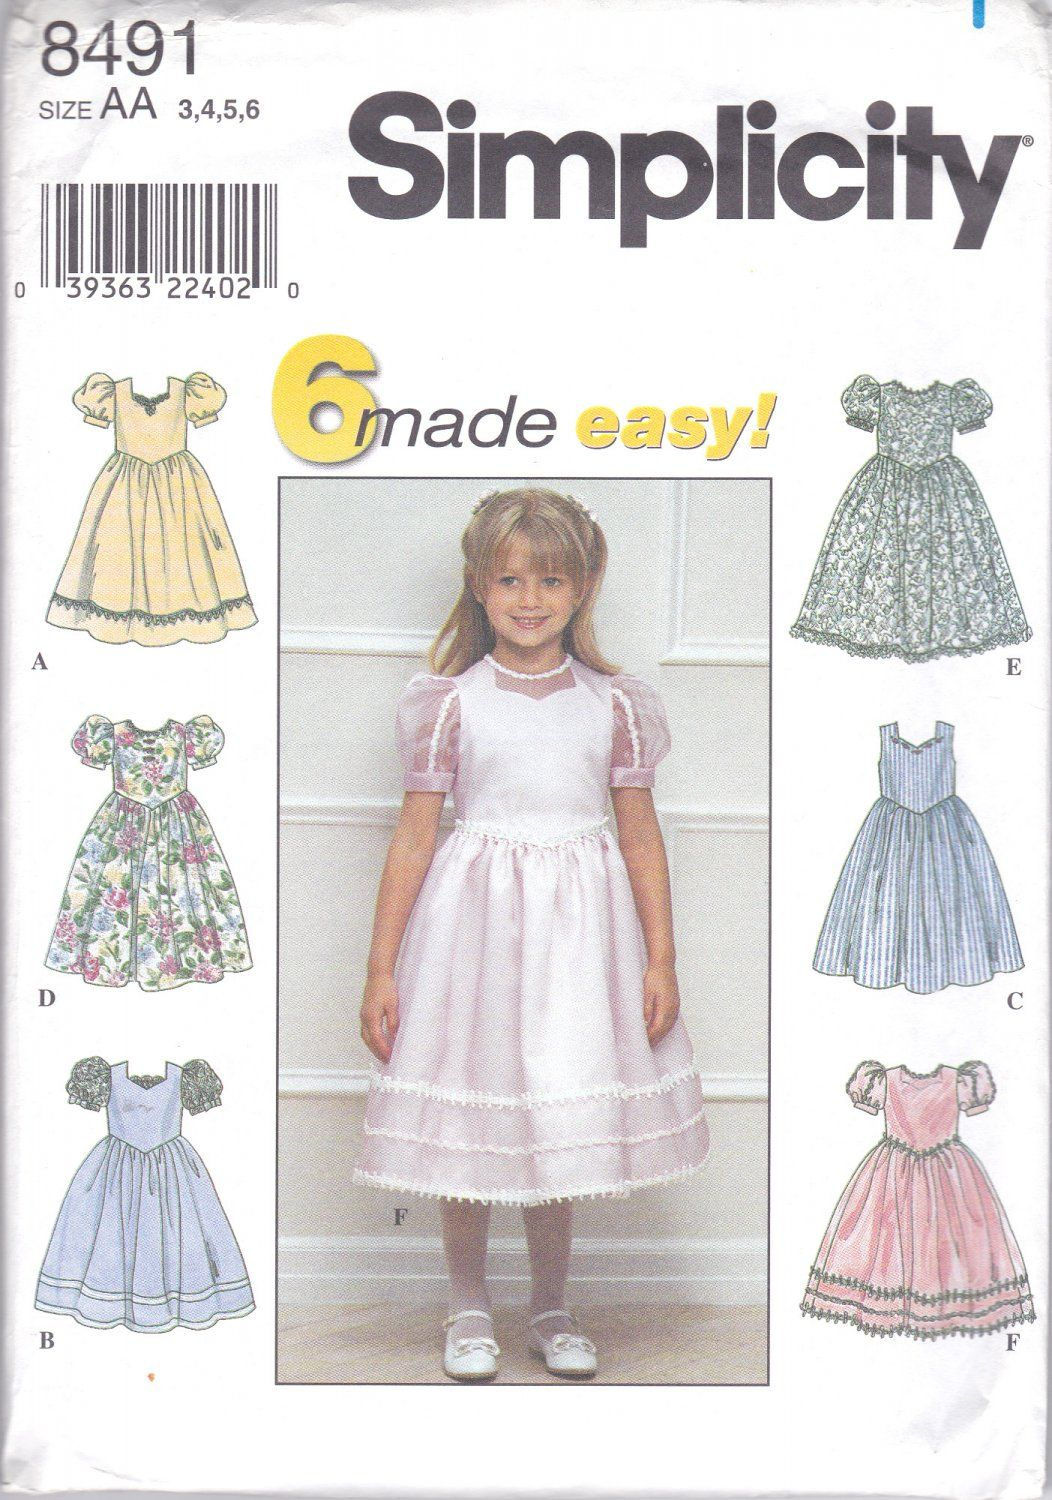 Simplicity 8491 Girls Sewing Pattern Childrens Dresses 6 Easy ...